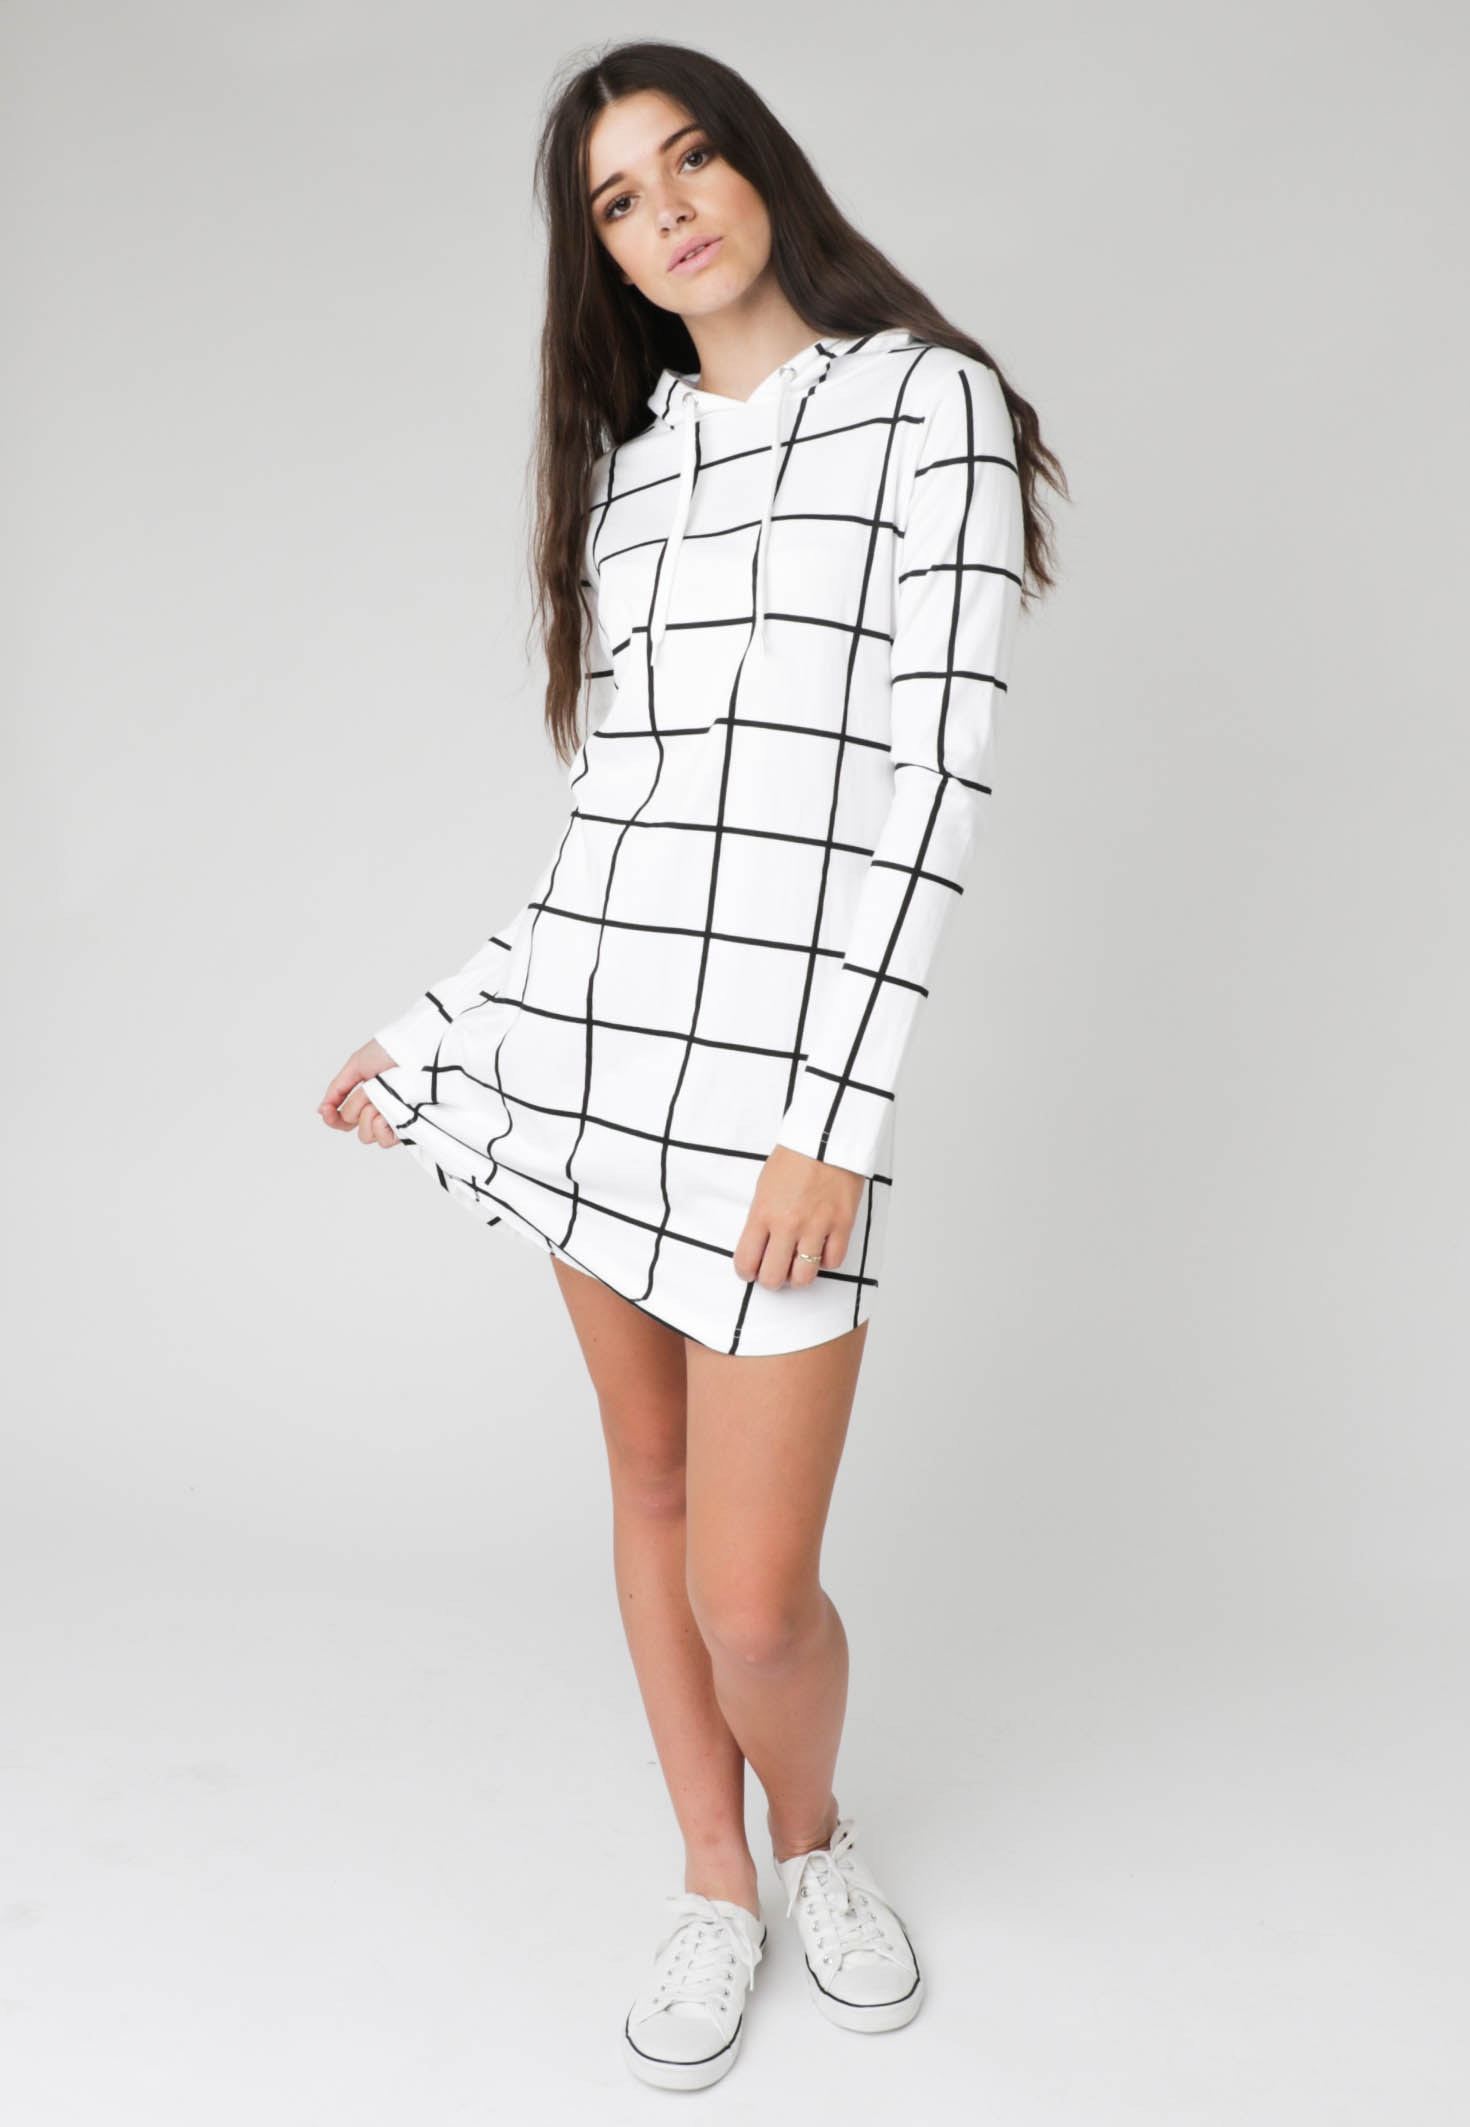 Silent Theory - Grid L/S Hoody Dress - White with black grid